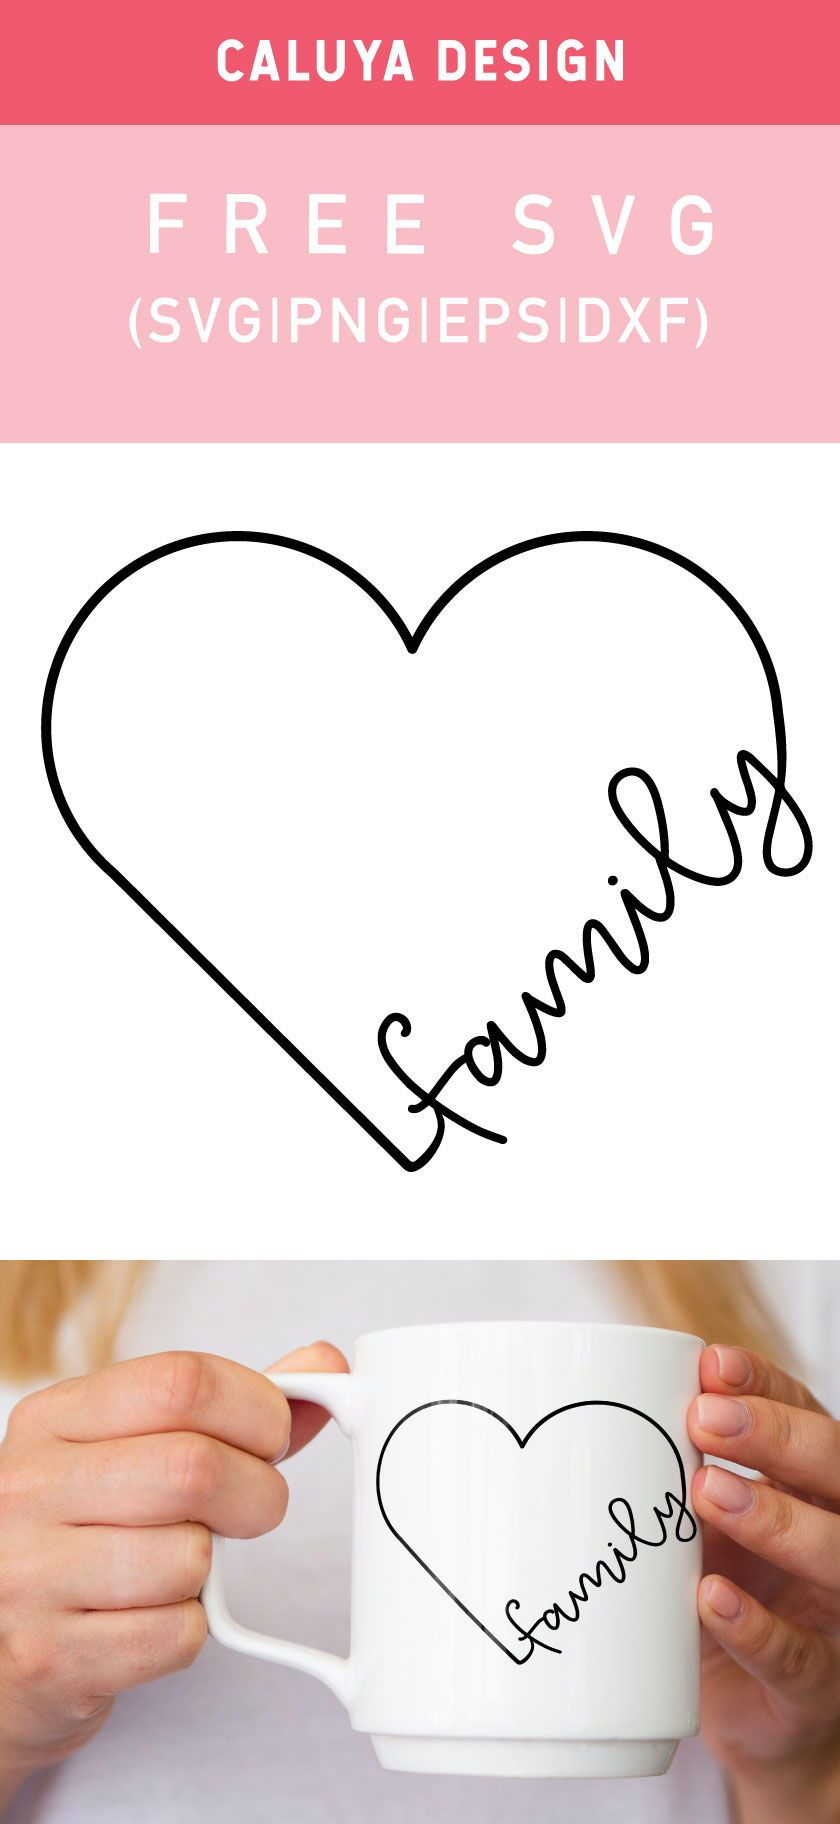 Free Heart Family Svg Png Eps Dxf By Caluya Design In 2020 Free Printable Clip Art Cricut Free Cricut Projects Vinyl